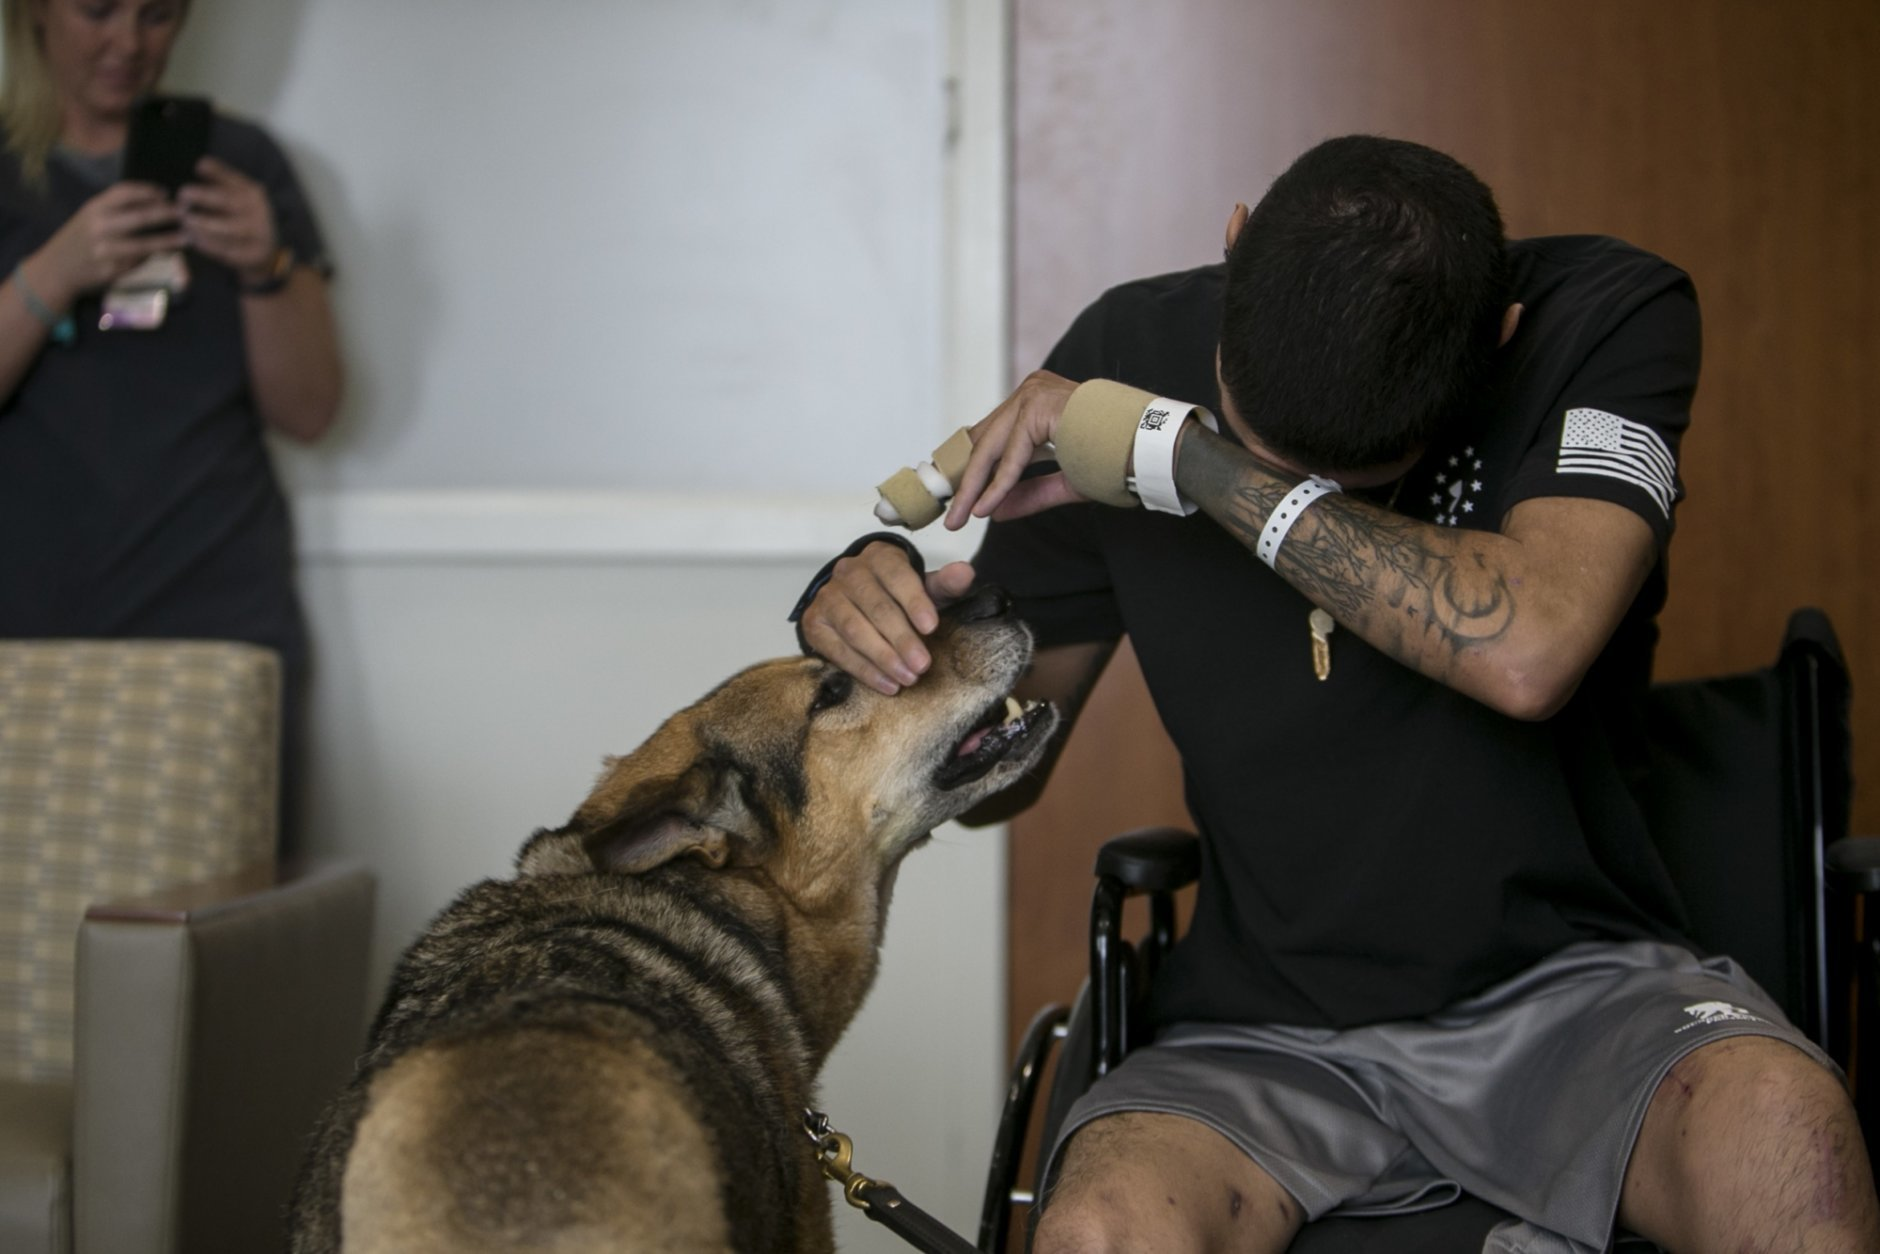 Army Spc. Alec Alcoser wipes away tears as he is reunited with his dog Alex at Audie L. Murphy Memorial VA Hospital, Friday, Sept. 14, 2018, in San Antonio, Texas. Alcoser was a military dog handler who suffered a traumatic brain injury and his dog lost a leg after they were hit by the blast of a suicide bomber in Afghanistan Aug. 5. Currently, Alcoser is receiving care at the VA's polytrauma unit, while Alex is rehabilitating at Joint Base San Antonio-Lackland.  (Josie Norris/The San Antonio Express-News via AP)